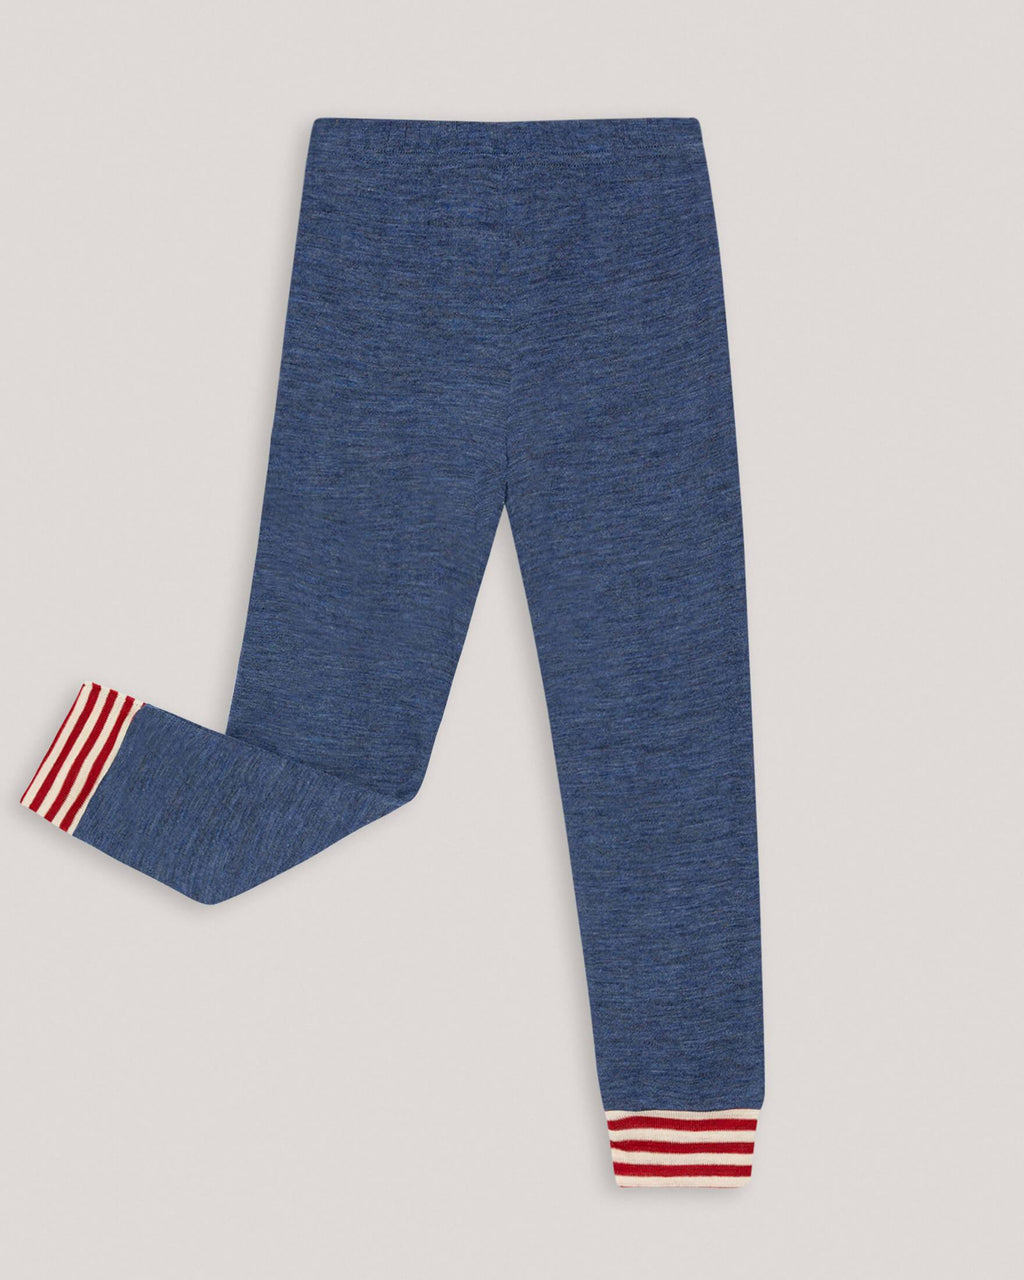 variant_2 | EN Blue Kids Trousers Freetime | DE Blau Kinderhose Freizeit